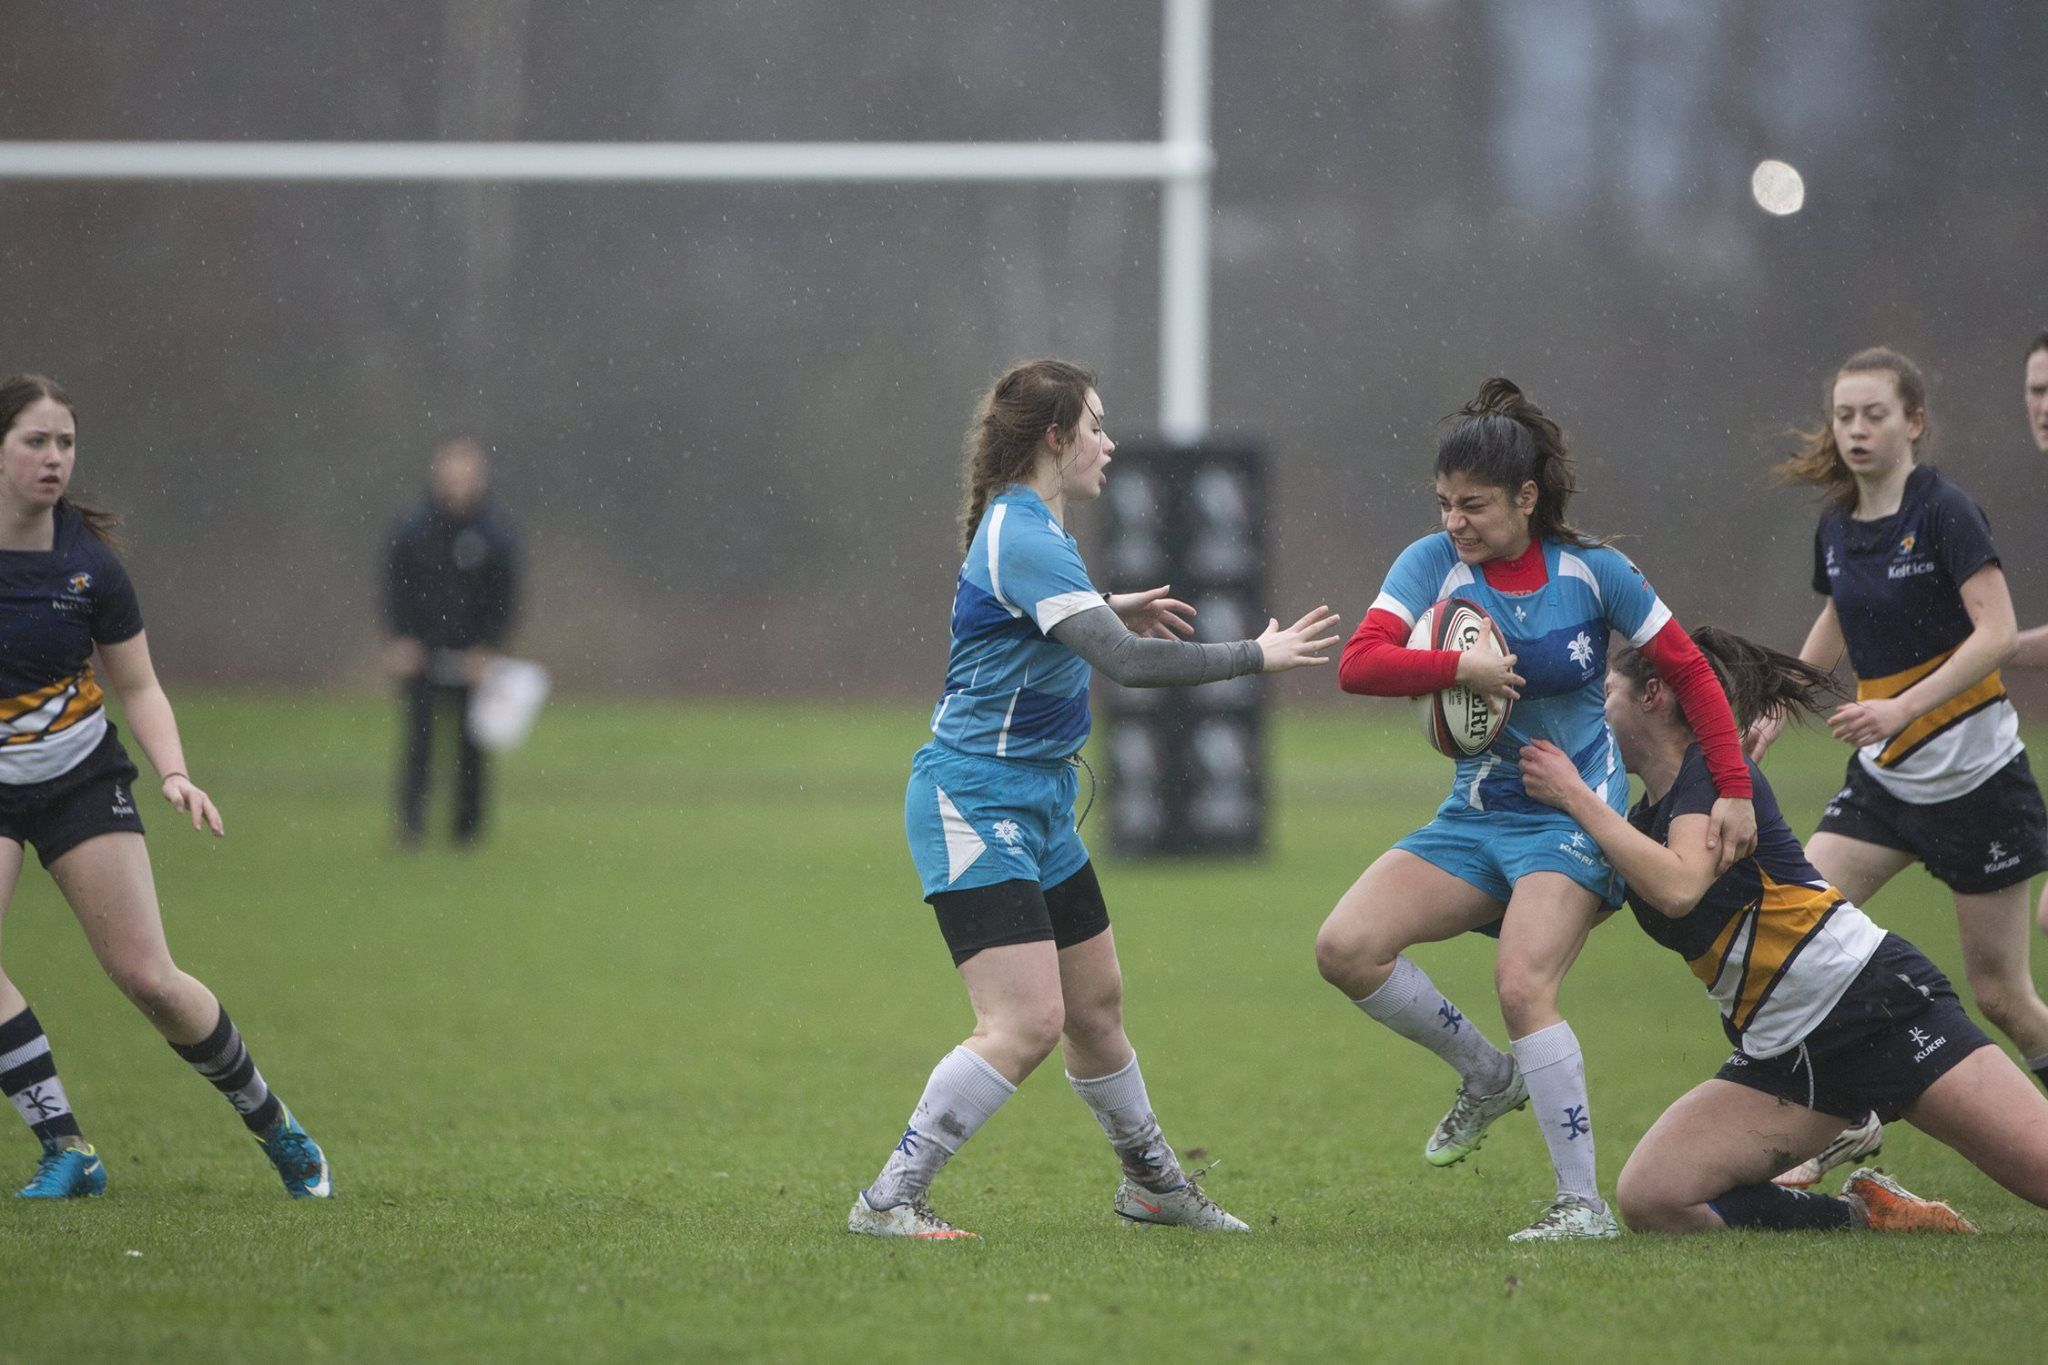 Rugby Canada womens competing teams